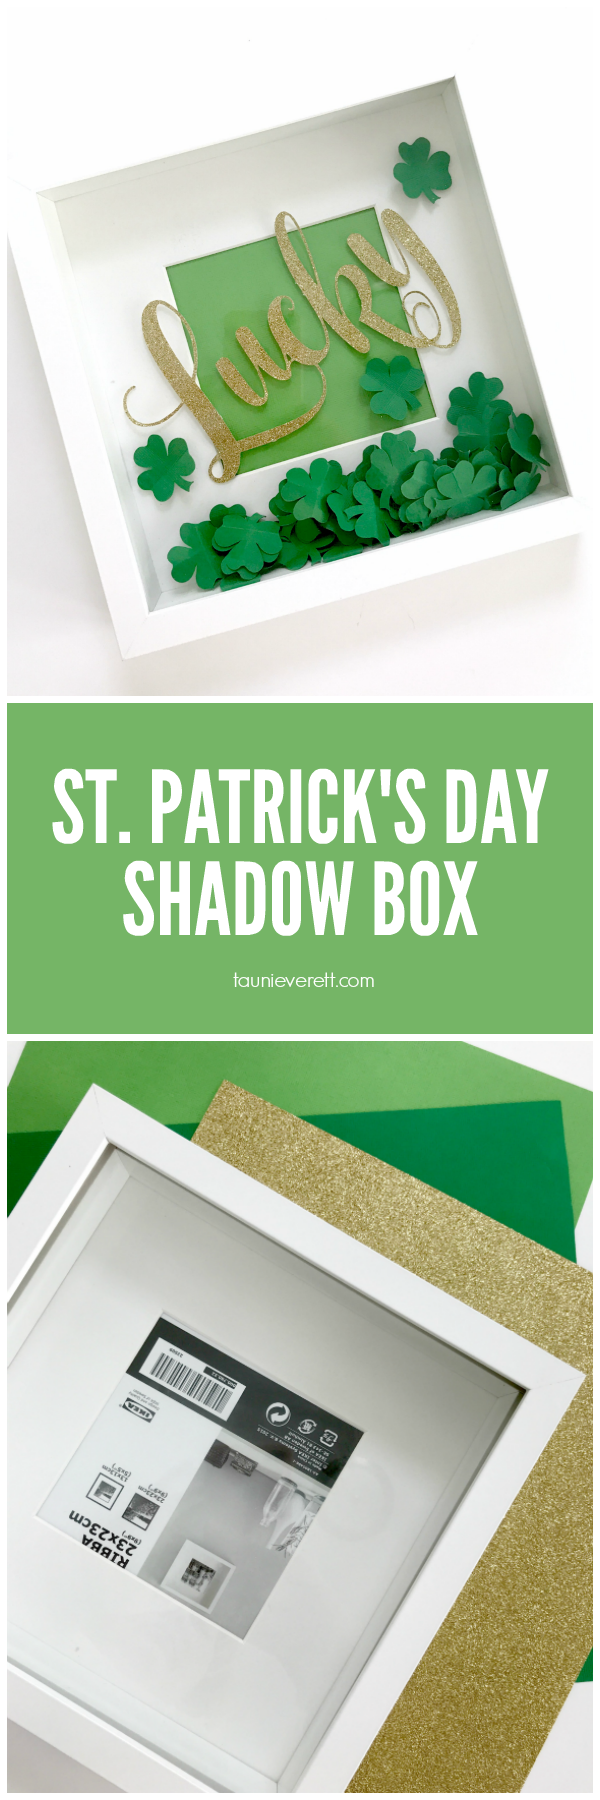 Make this inexpensive St. Patrick's Day Shadow Box in less than 15 min! #stpatricksday #fourleafclover